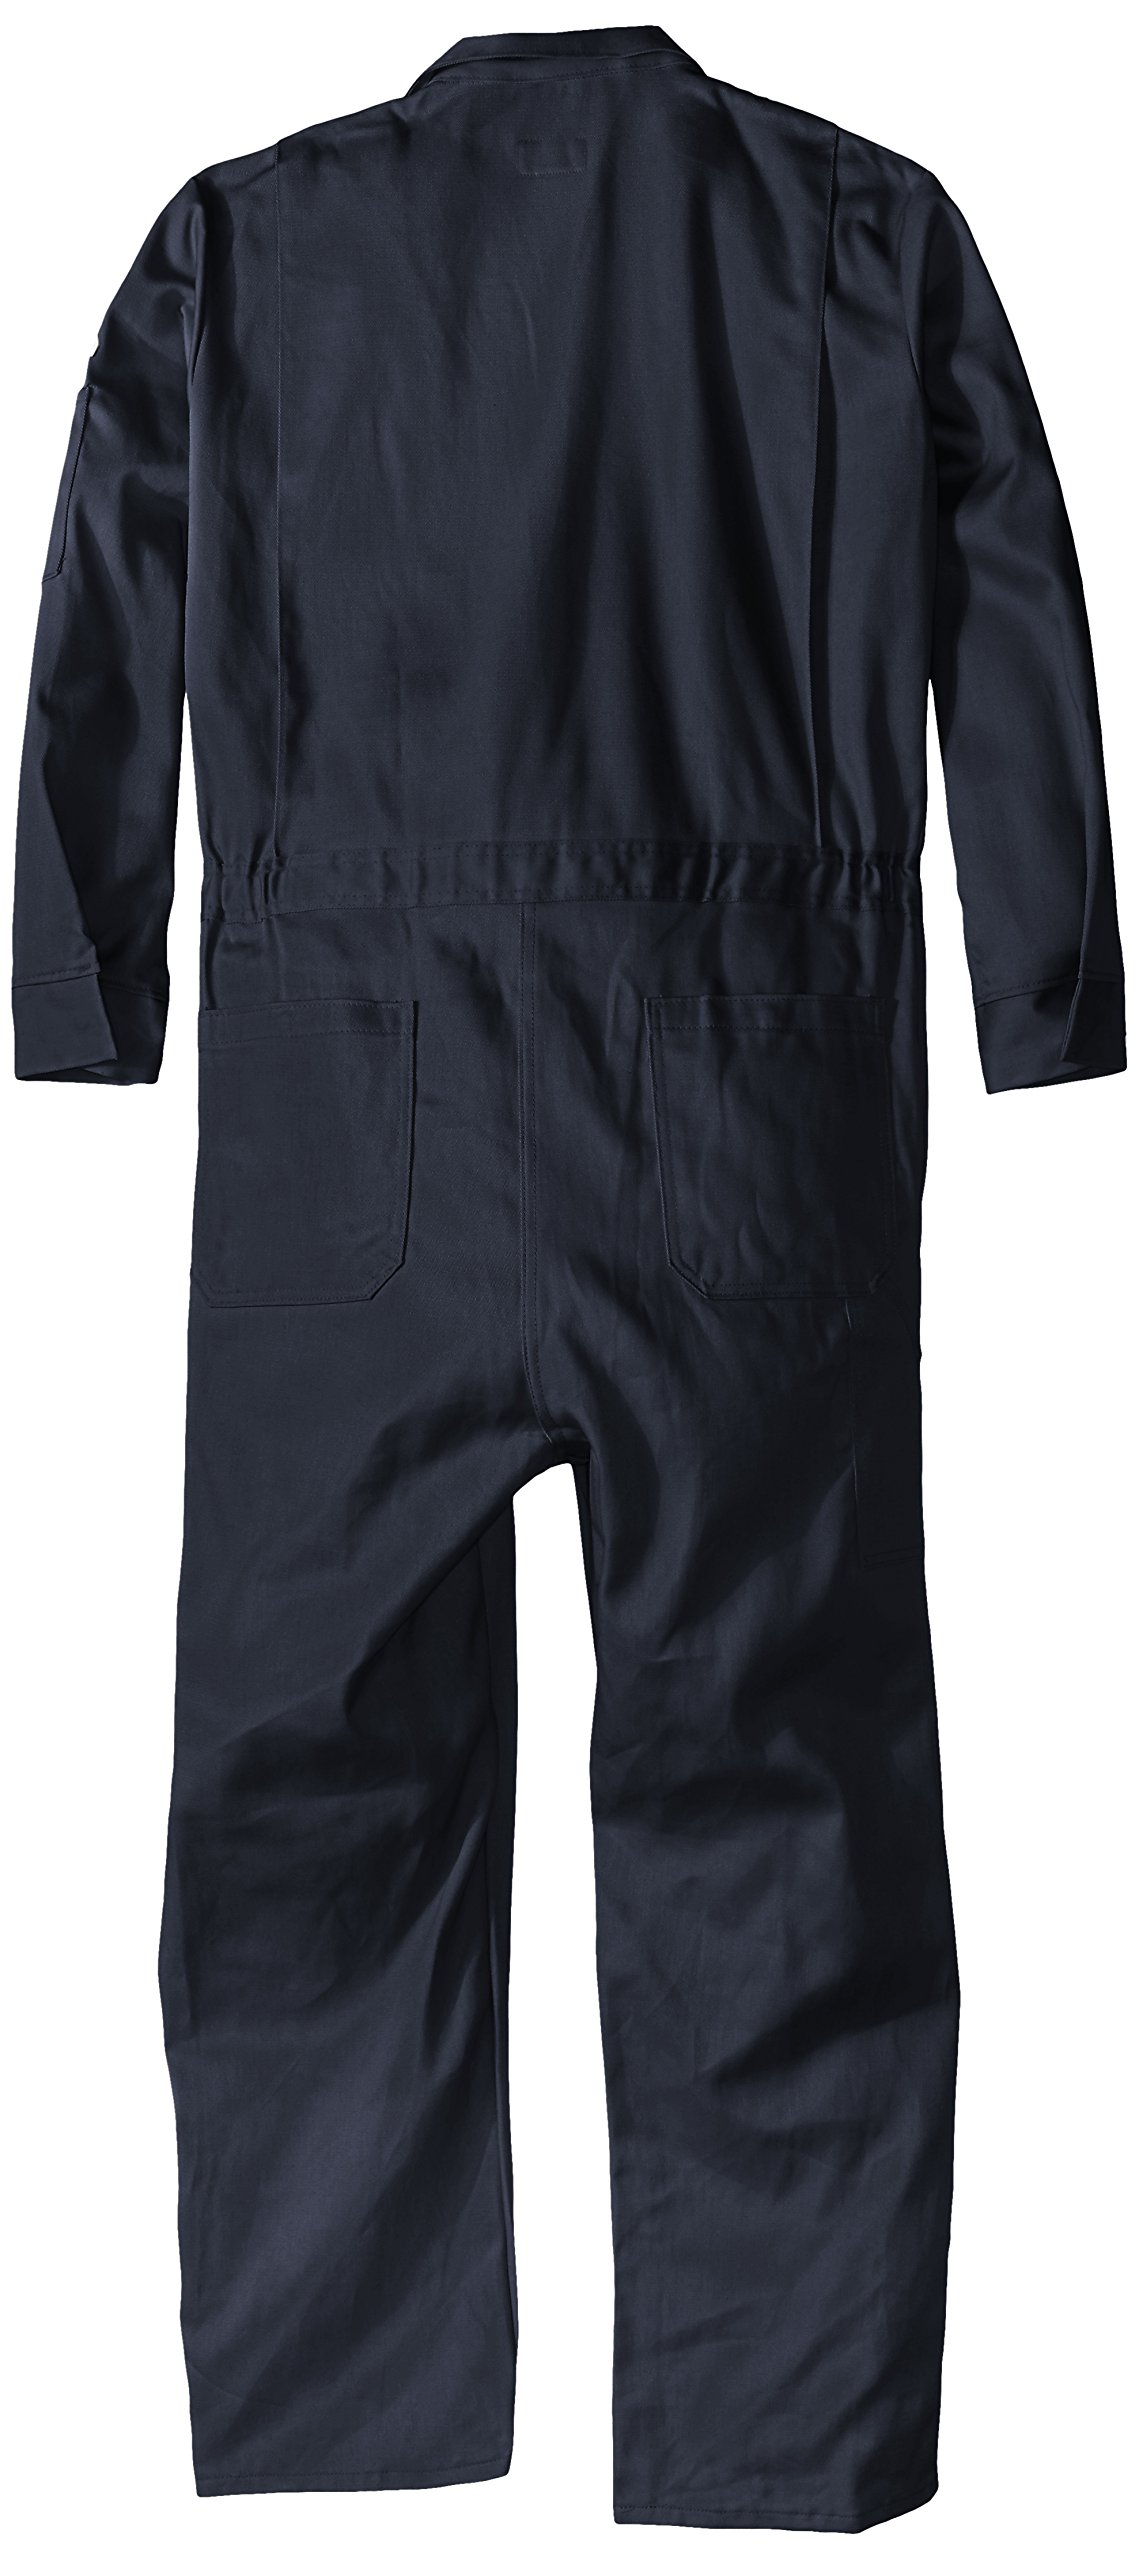 Bulwark Flame Resistant 9 oz Twill Cotton Premium Concealed Snap Coverall, Navy, 52 by Bulwark FR (Image #2)